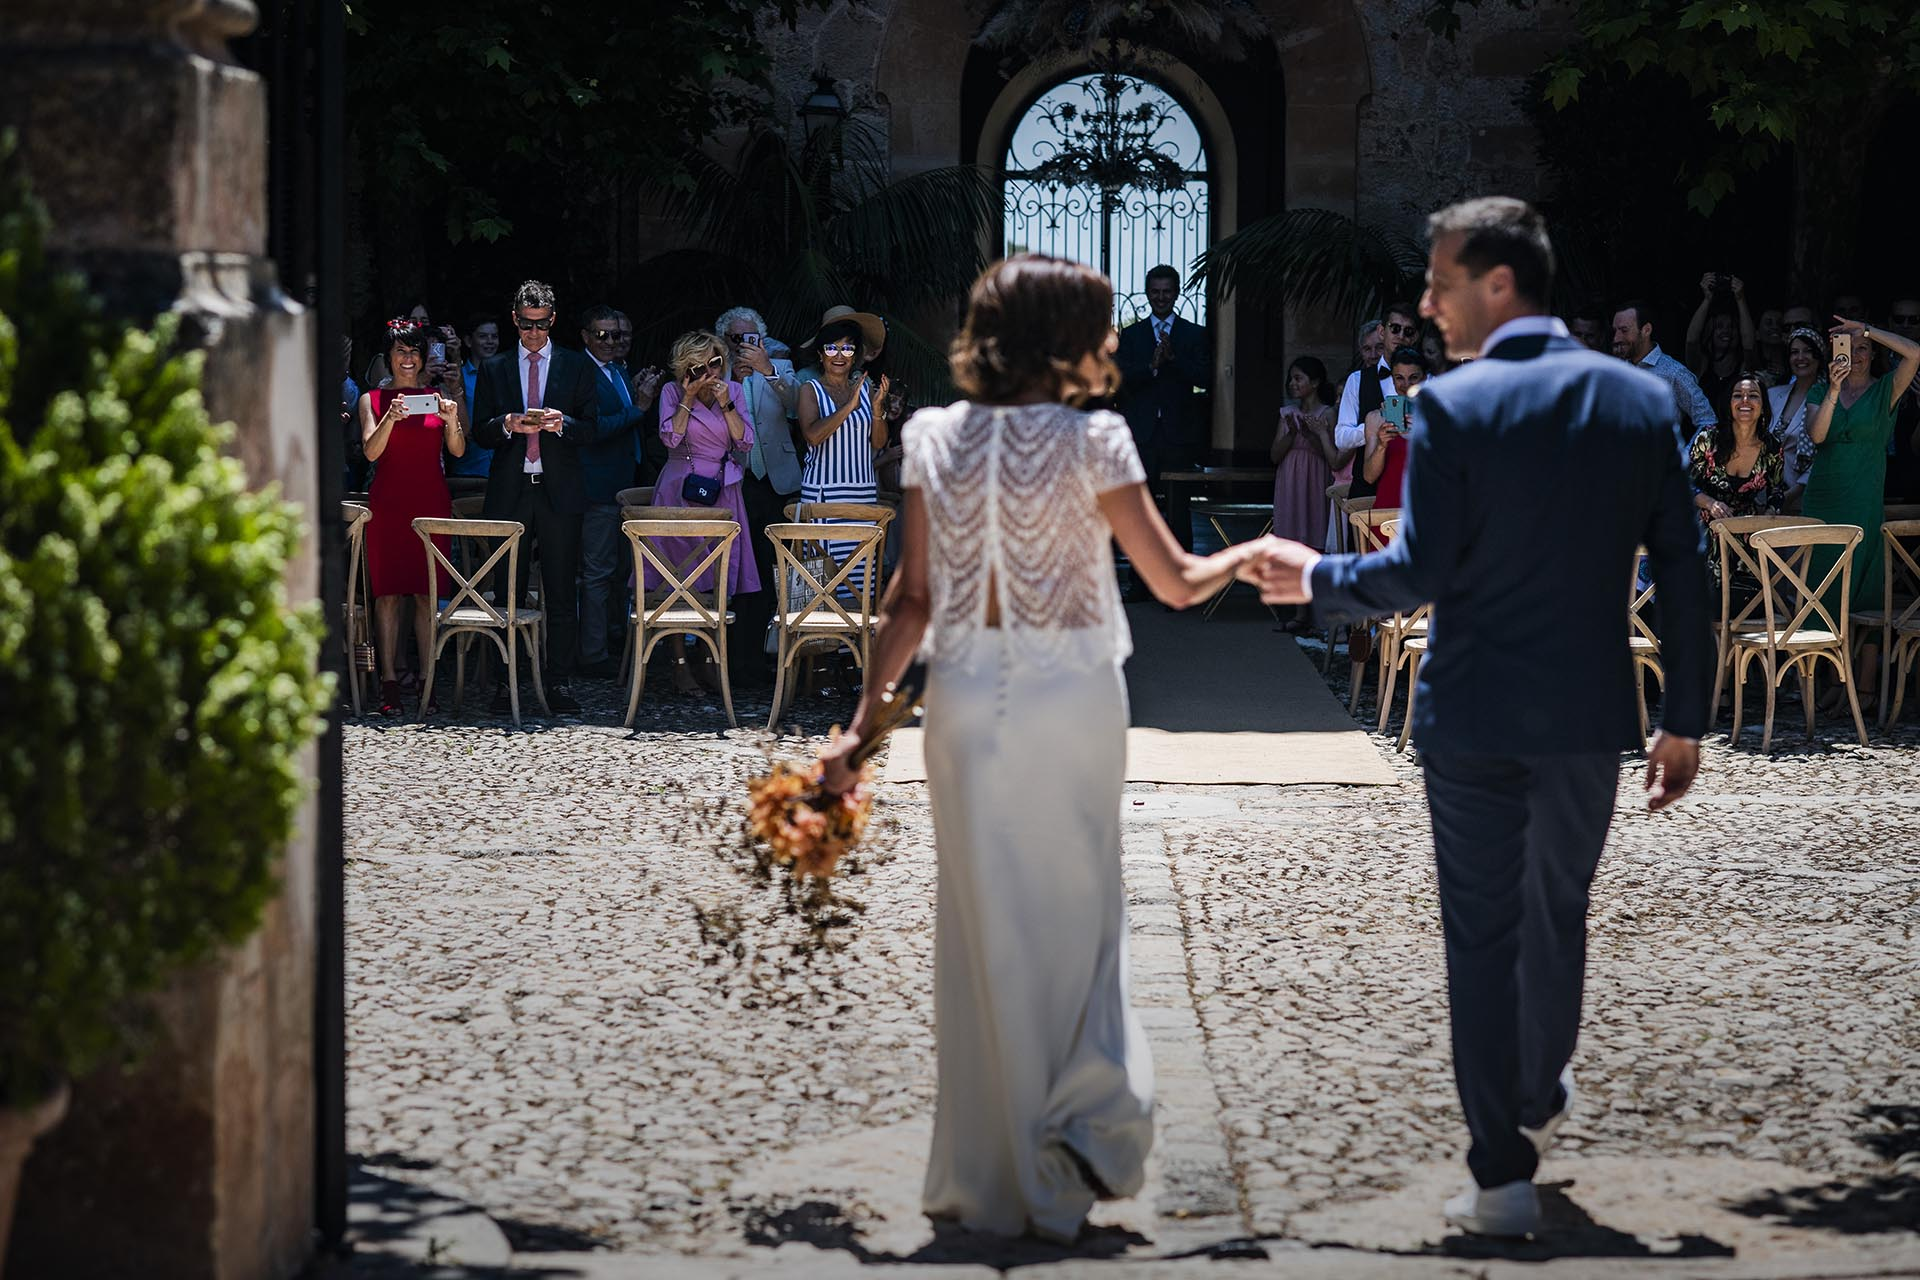 Mallorca wedding photographer, Majorca wedding photographer, Mallorca wedding planner, La Fortaleza Mallorca, La Fortaleza wedding, Son Togores